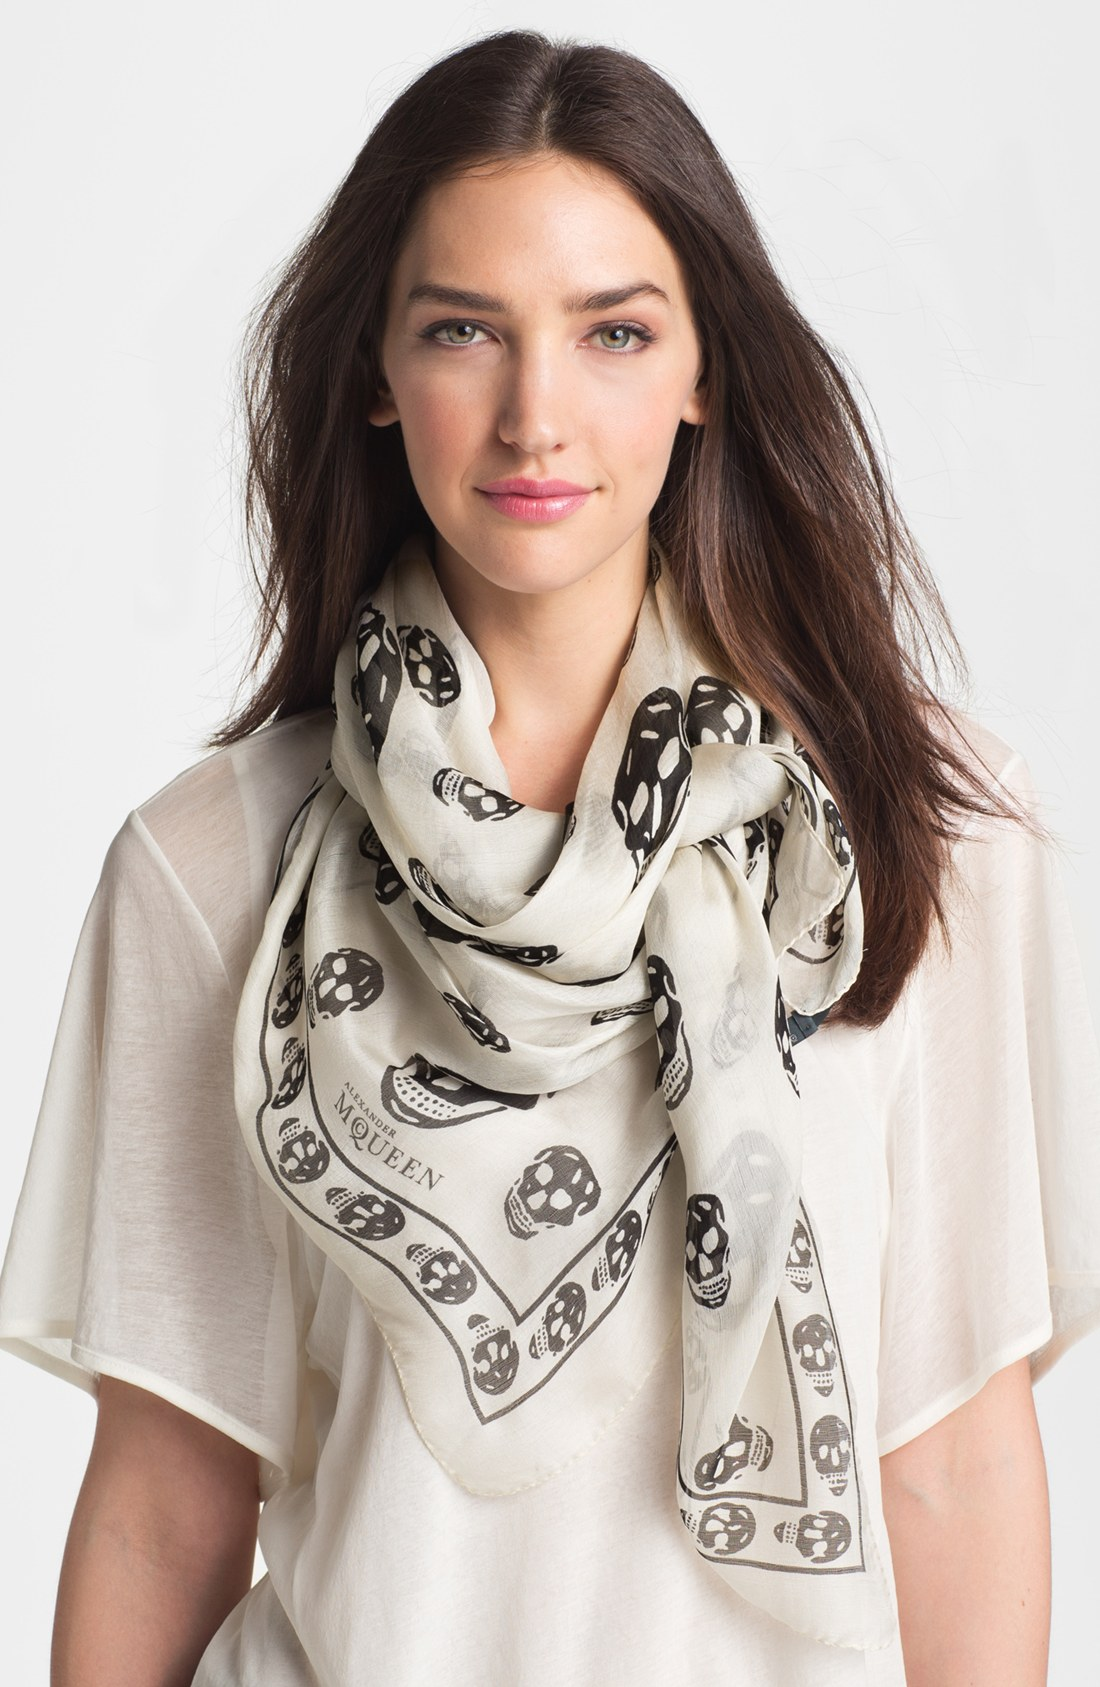 d585f22441b03  350 Alexander Mcqueen Classic White Black Silk Skull Print Chiffon Scarf.  Return to Previous Page. Out. of stock. a-mcqueen lightbox · lightbox